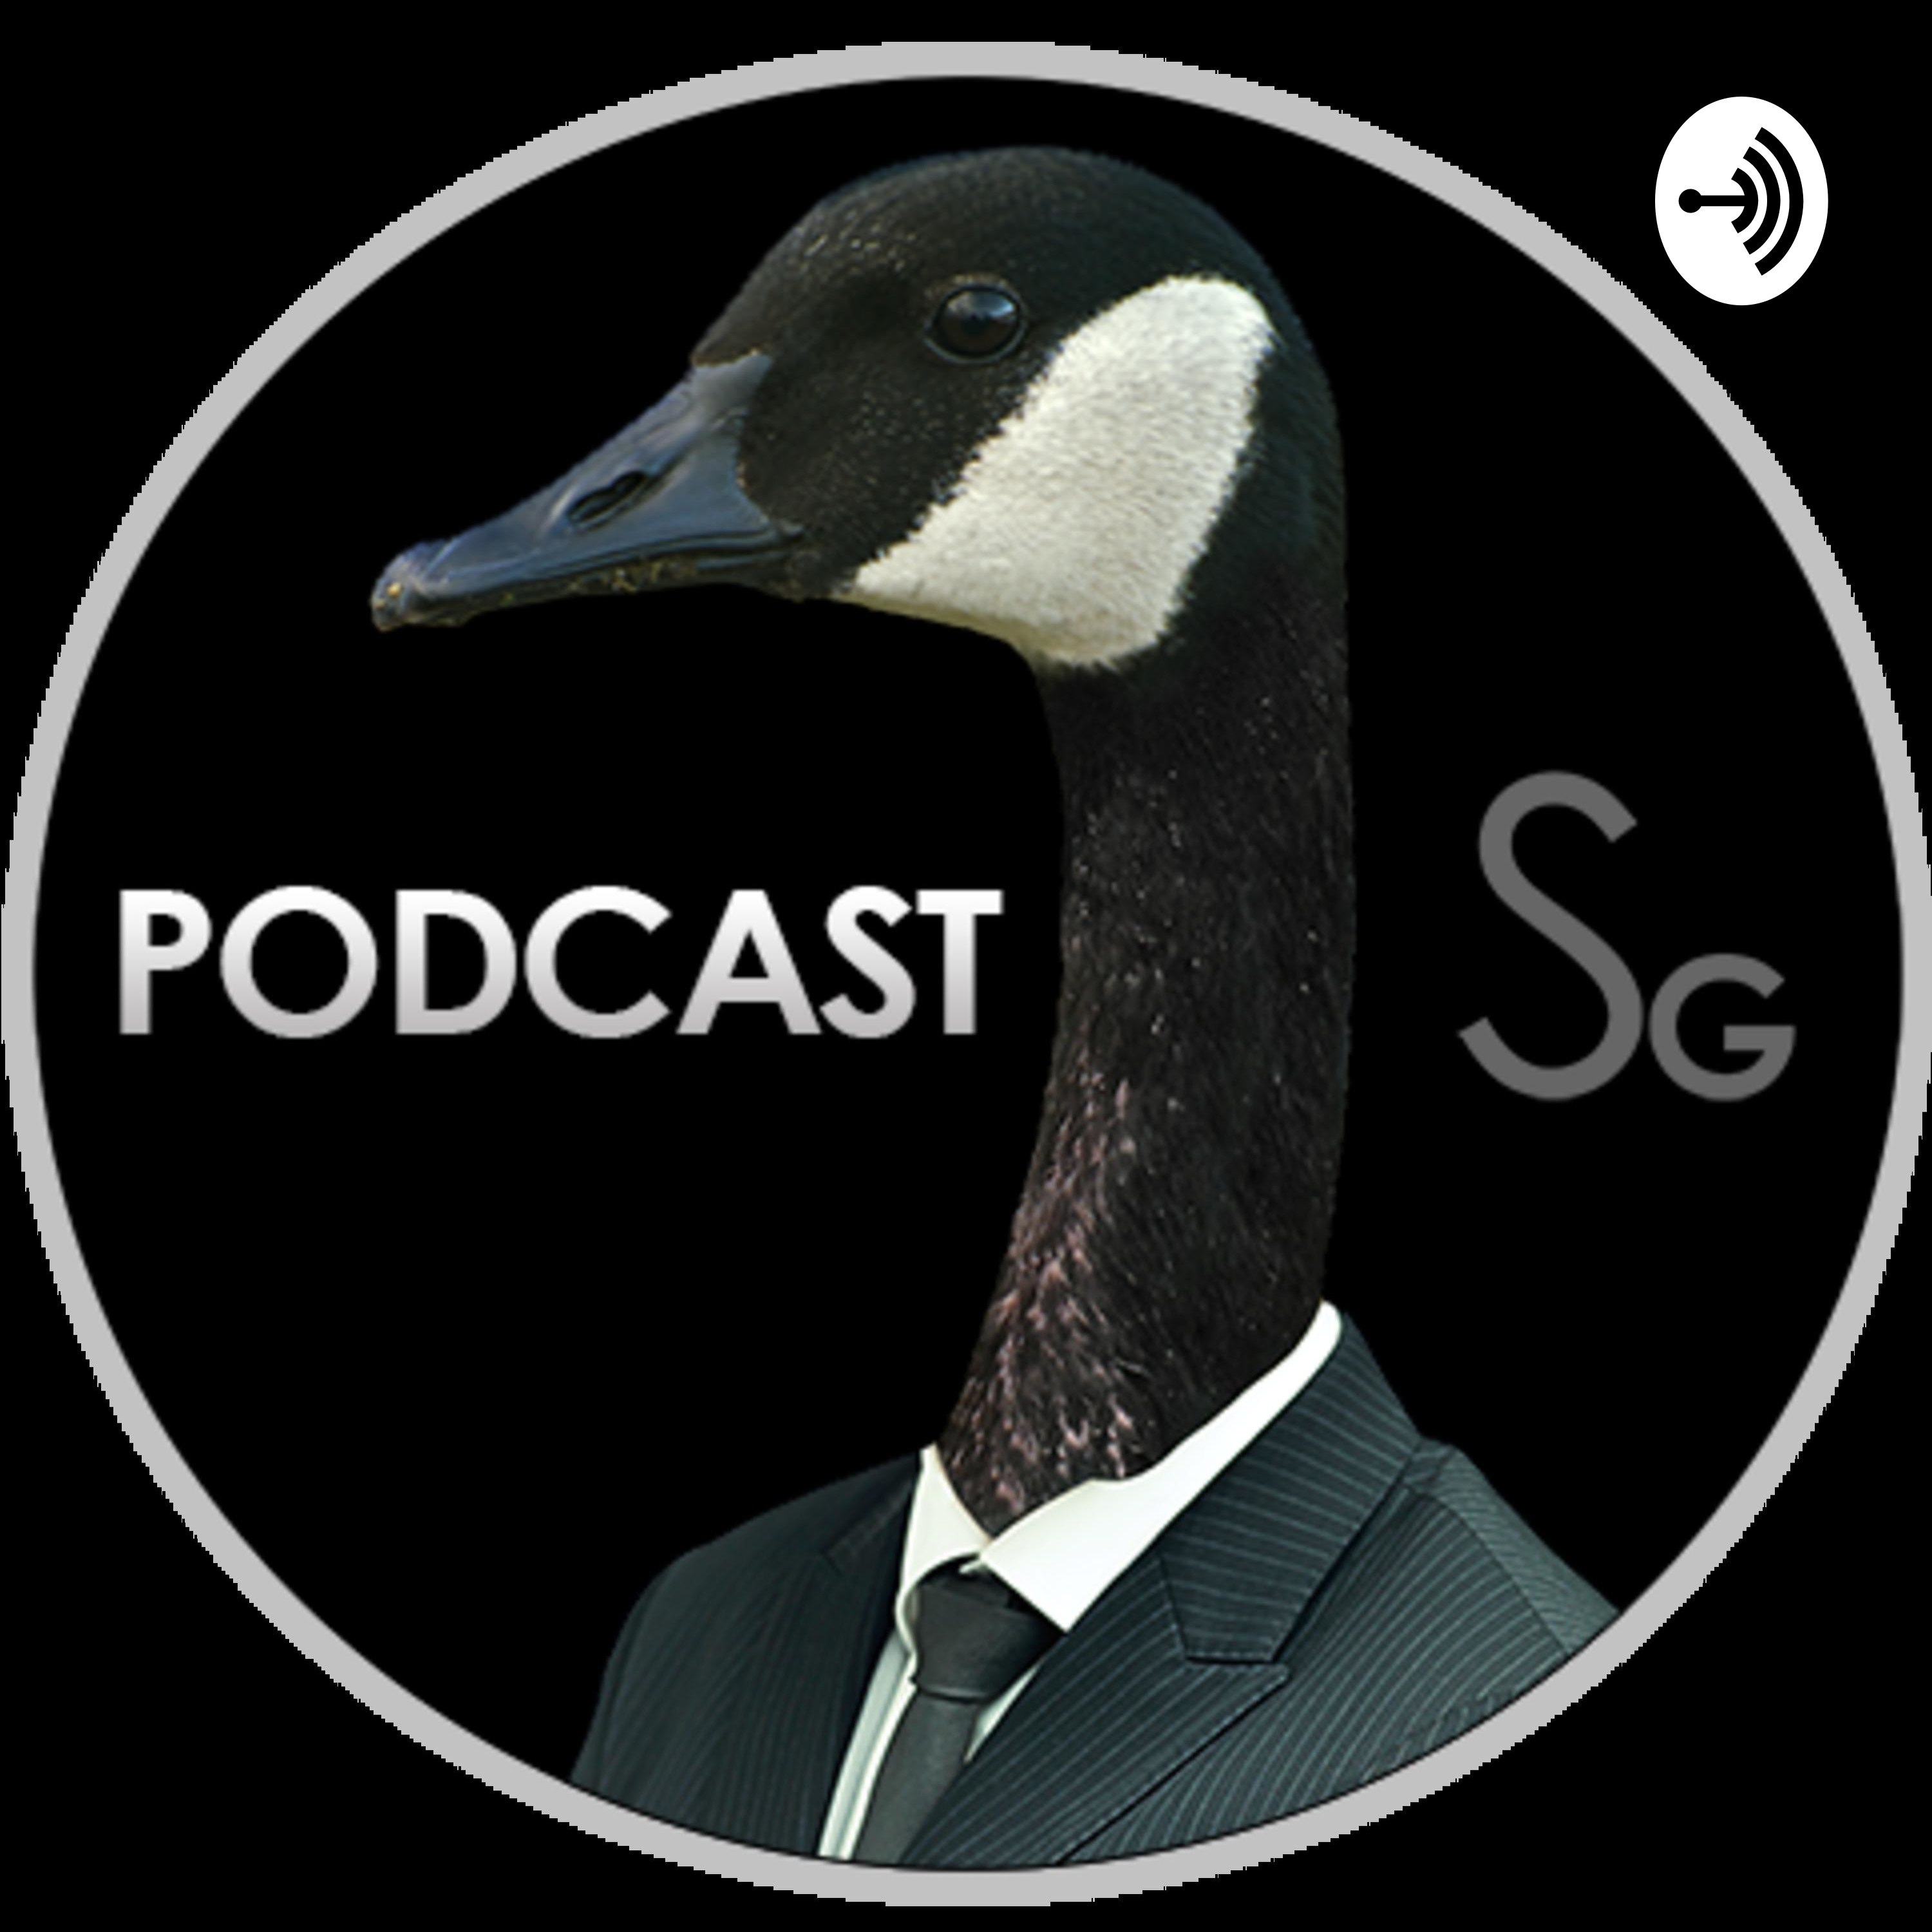 EP2 - Guest Micah from KBB is Premium